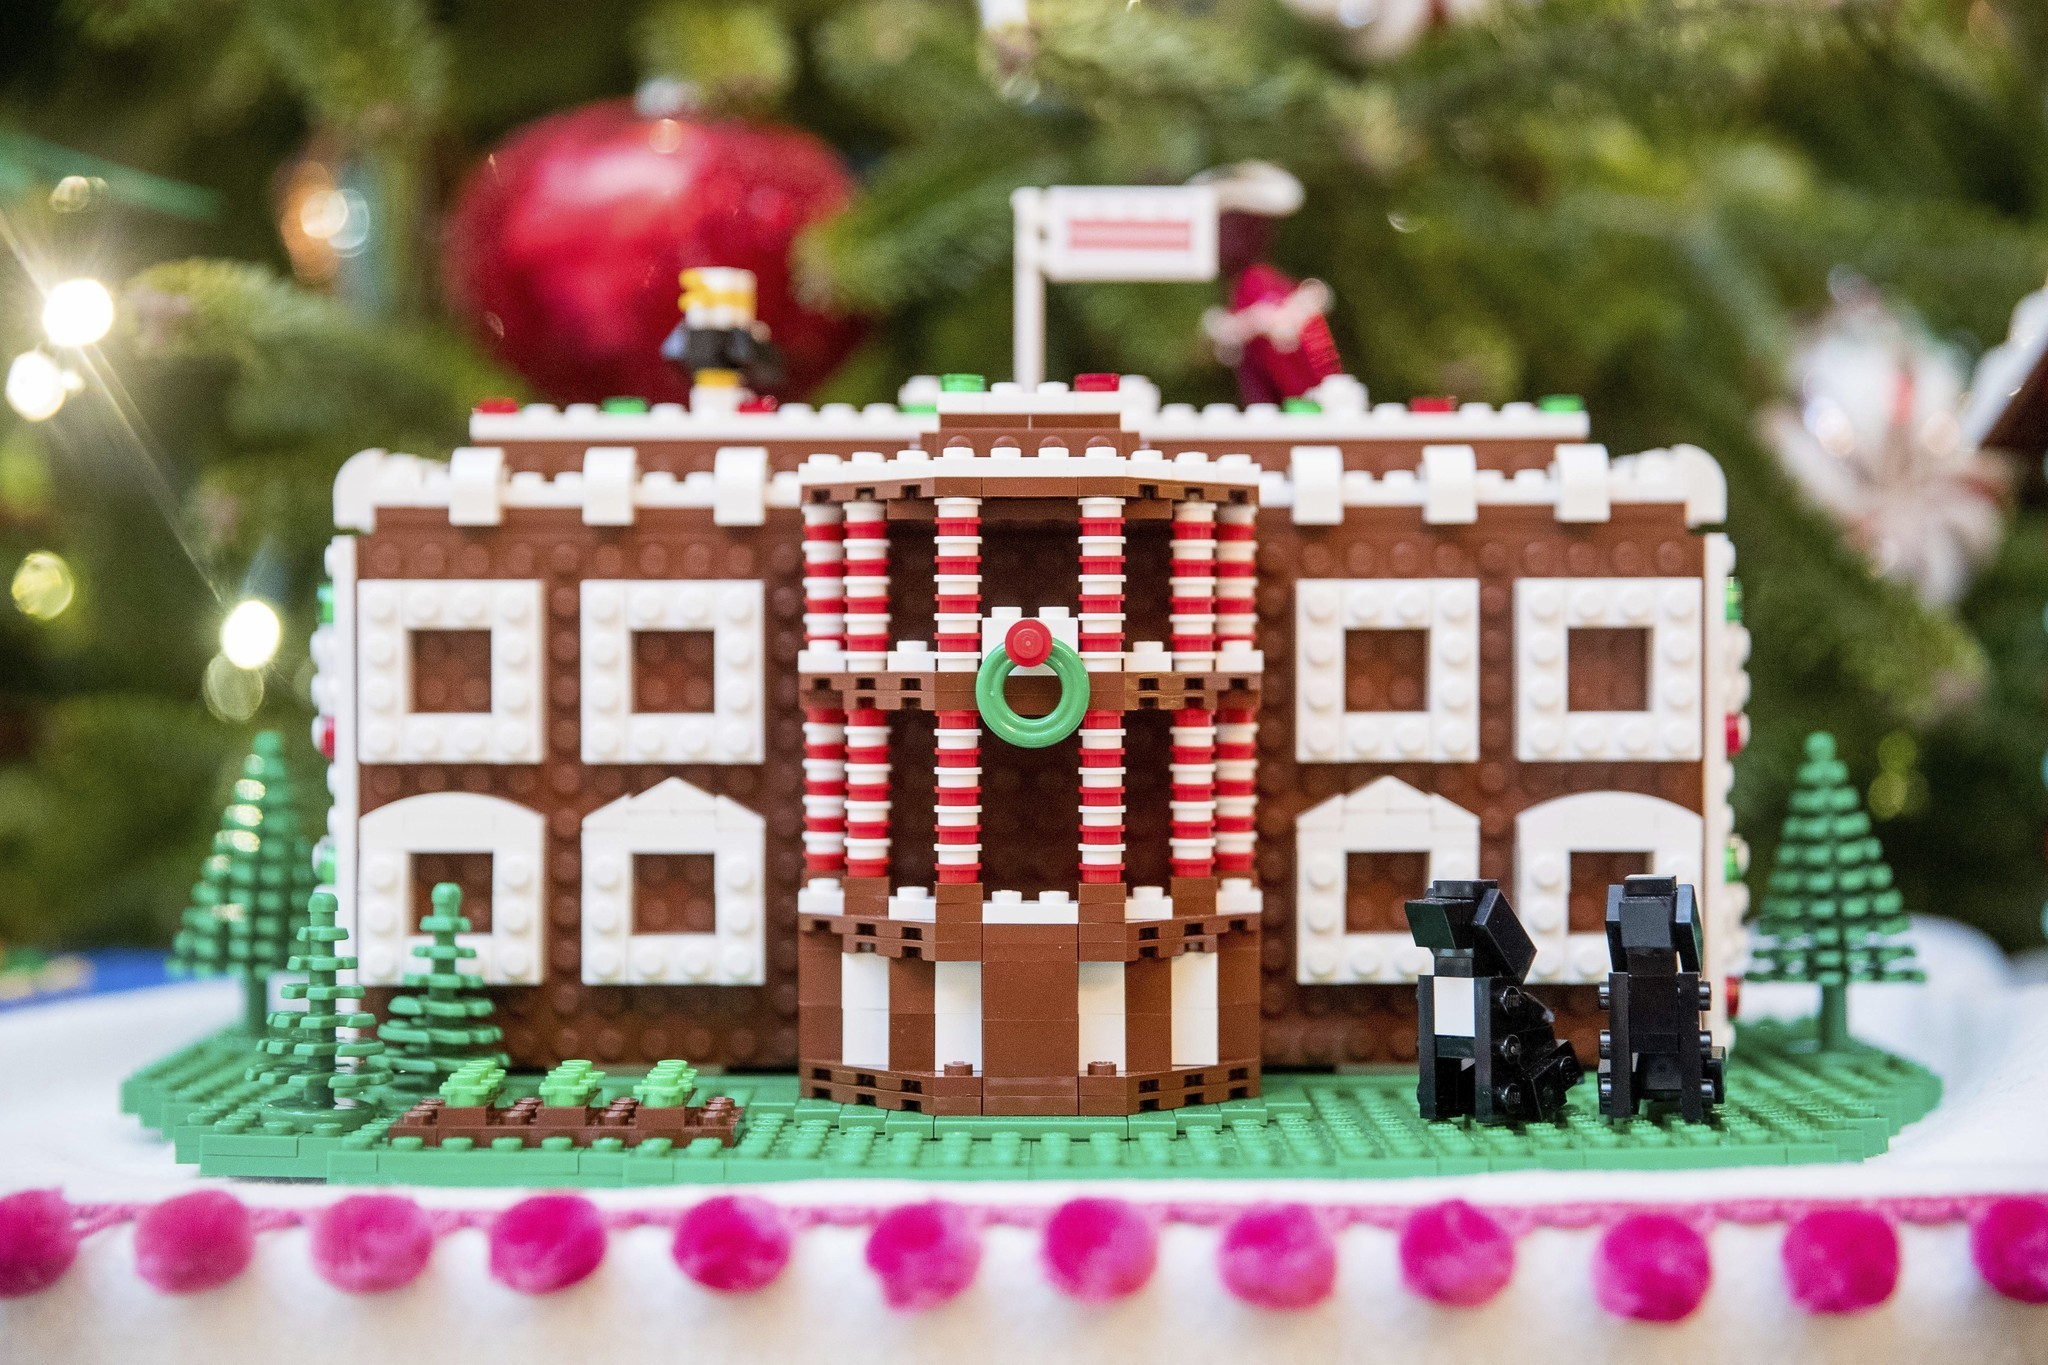 Holiday decorations at the white house are displayed during a press - Child S Play Lego Master Builders Show Work At White House Hartford Courant